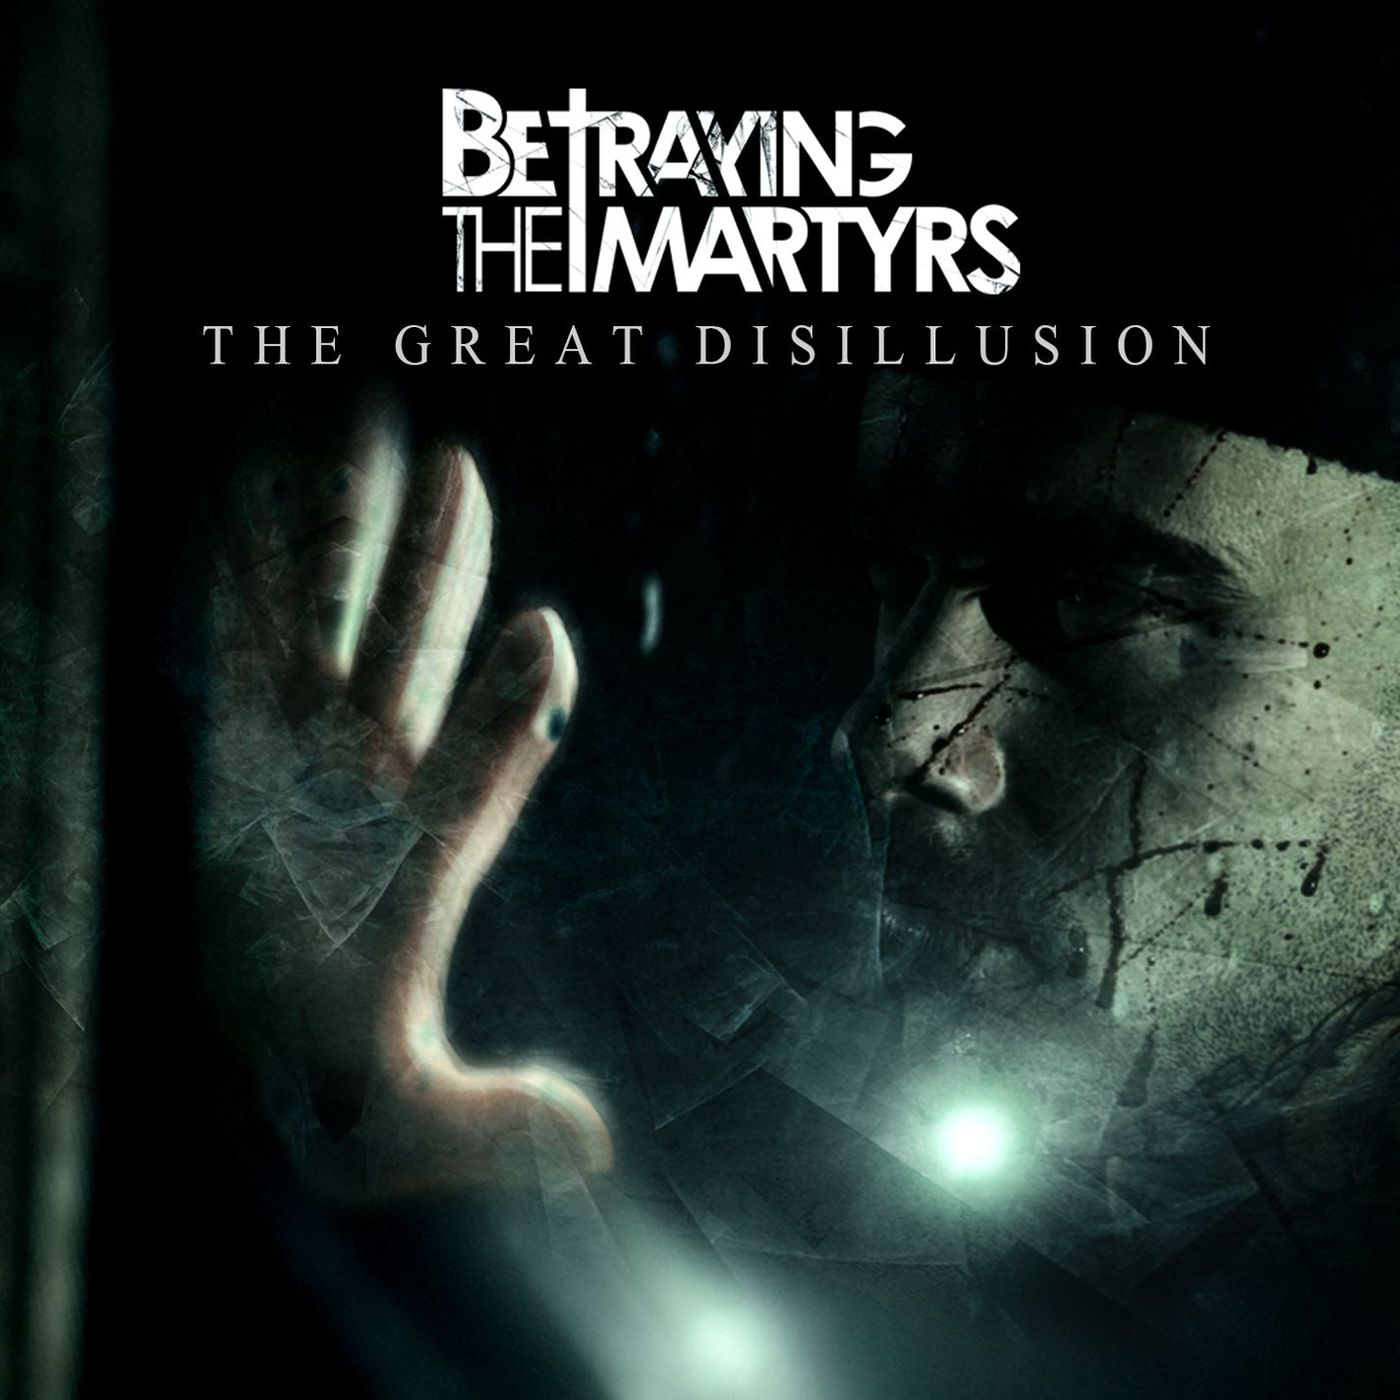 Betraying the Martyrs - The Great Disillusion [single] (2016)